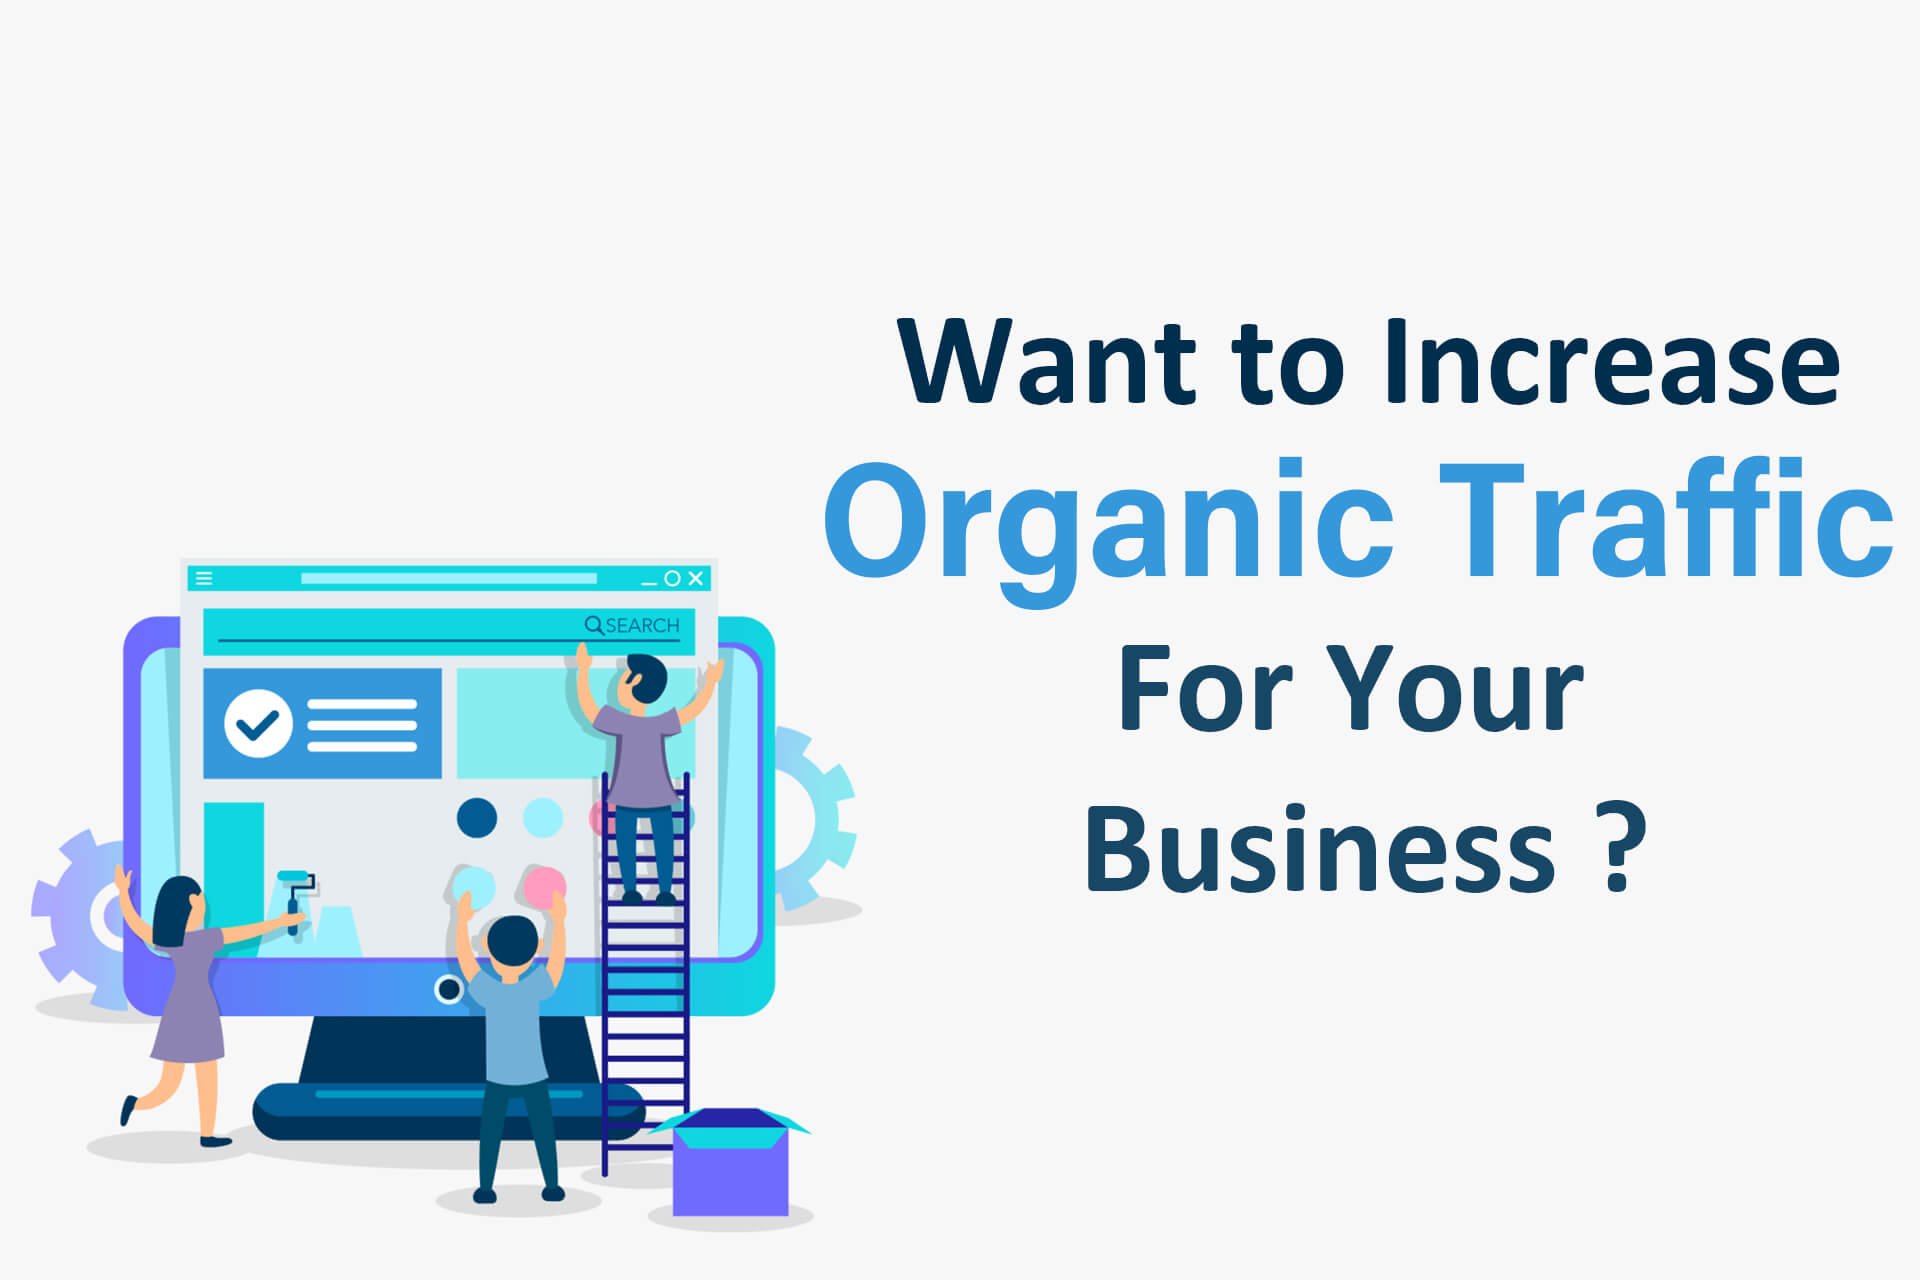 Want To Increase Organic Traffic For Your Business?